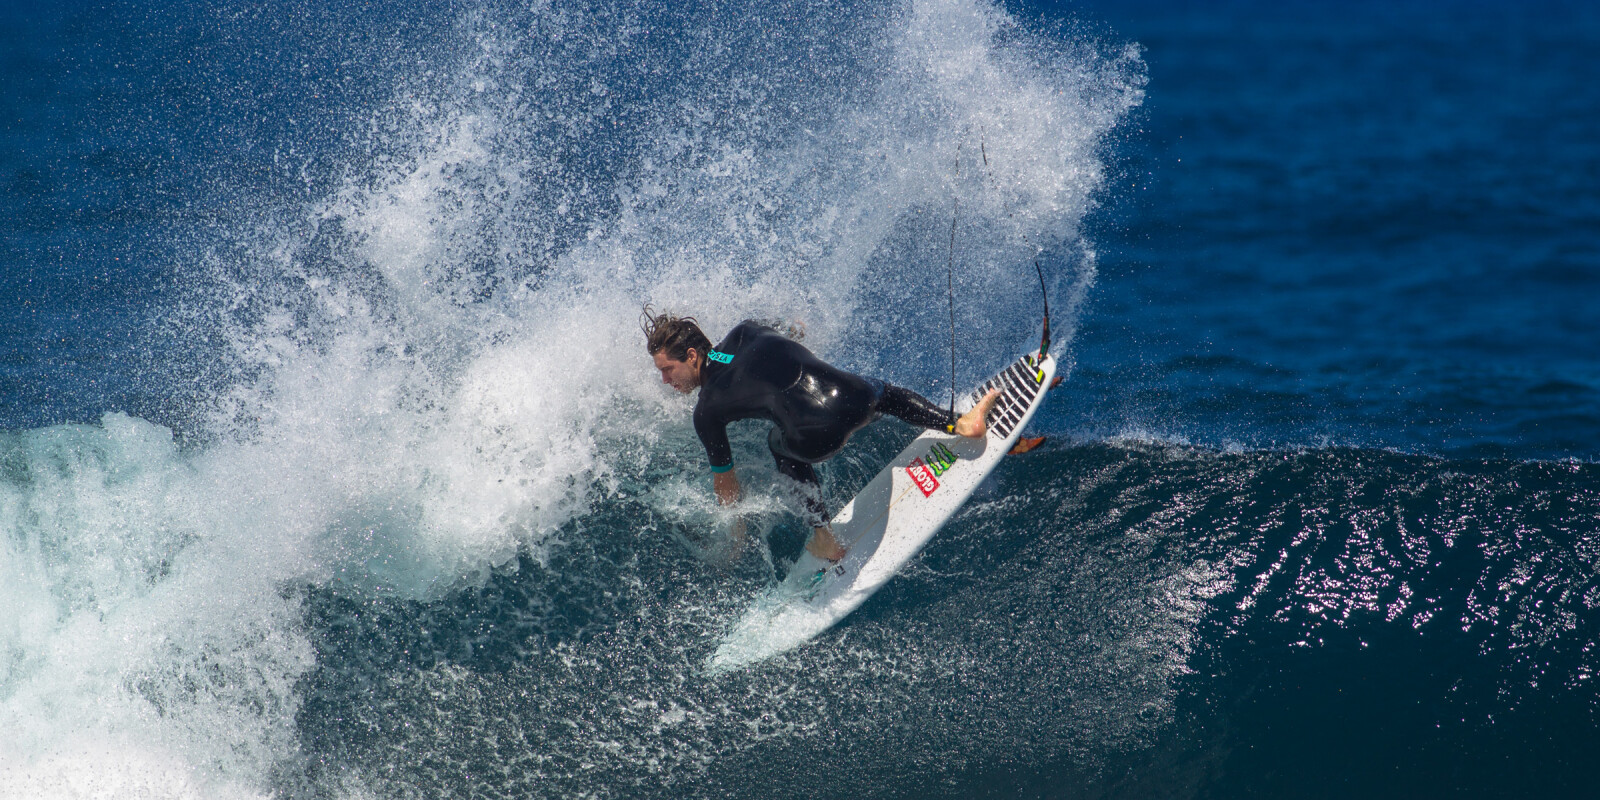 Dillon Perillo surfing for The Dill & Beeg Project